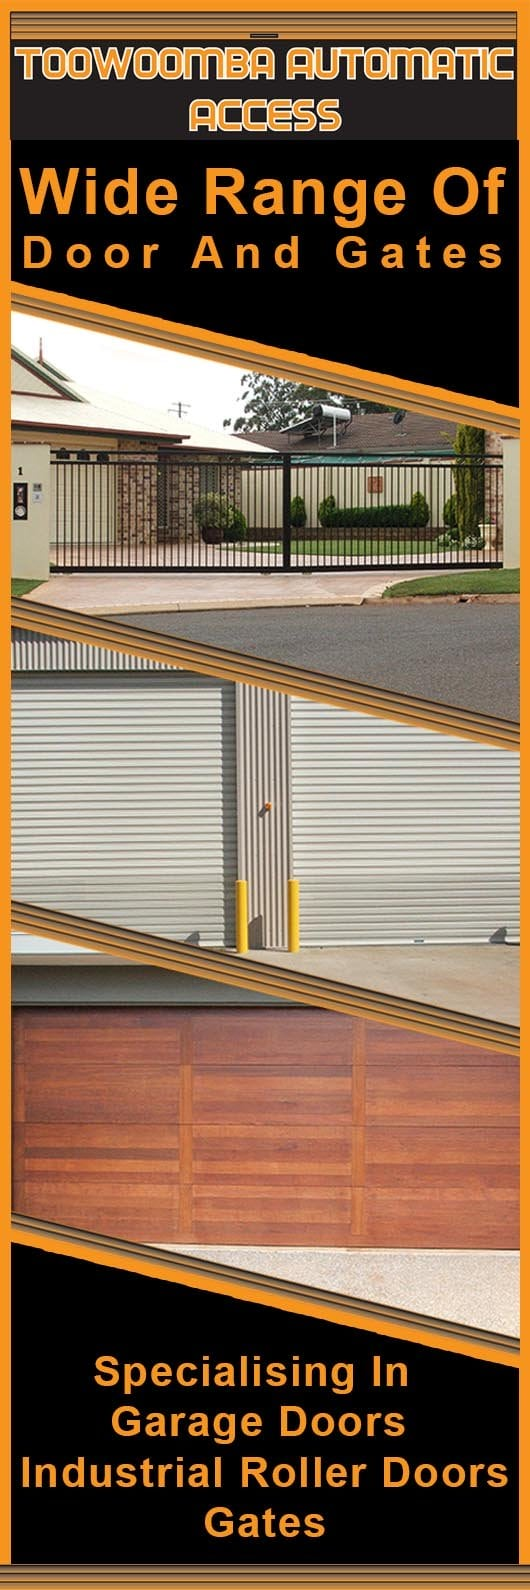 Toowoomba Automatic Access - Promotion & Toowoomba Automatic Access - Garage Doors u0026 Fittings - Shed 12 45-61 ...